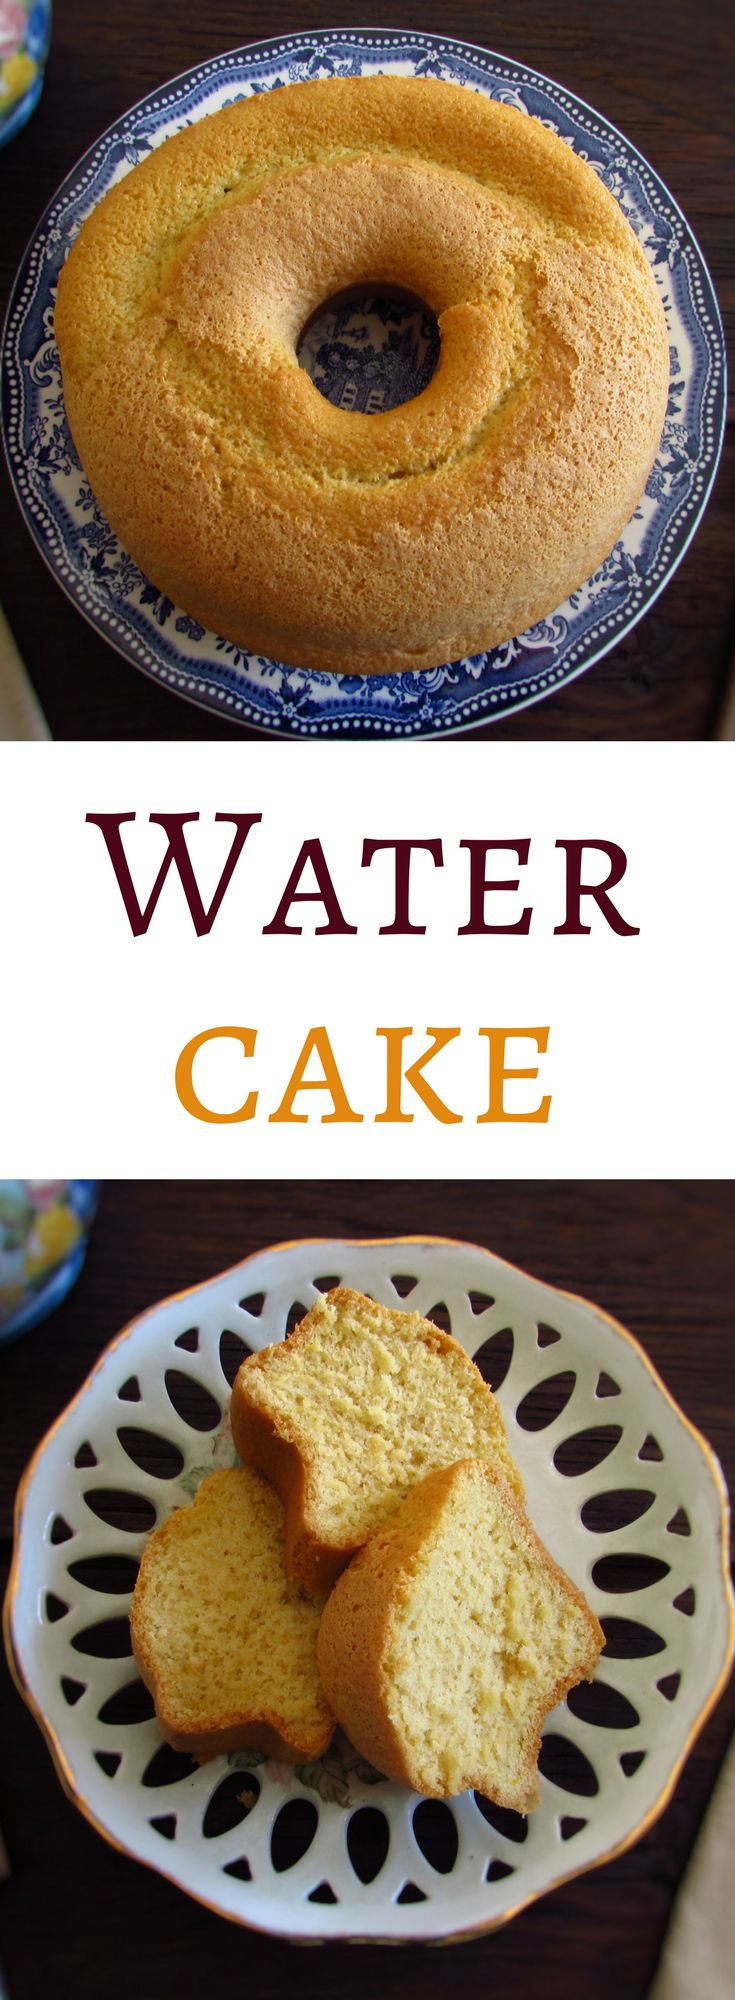 Water cake | Food From Portugal. Do you like tasty cakes but light and fluffy? We present this delicious water cake recipe, it's easy to prepare, economic and has excellent presentation! Serve with orange juice… #recipe #cake